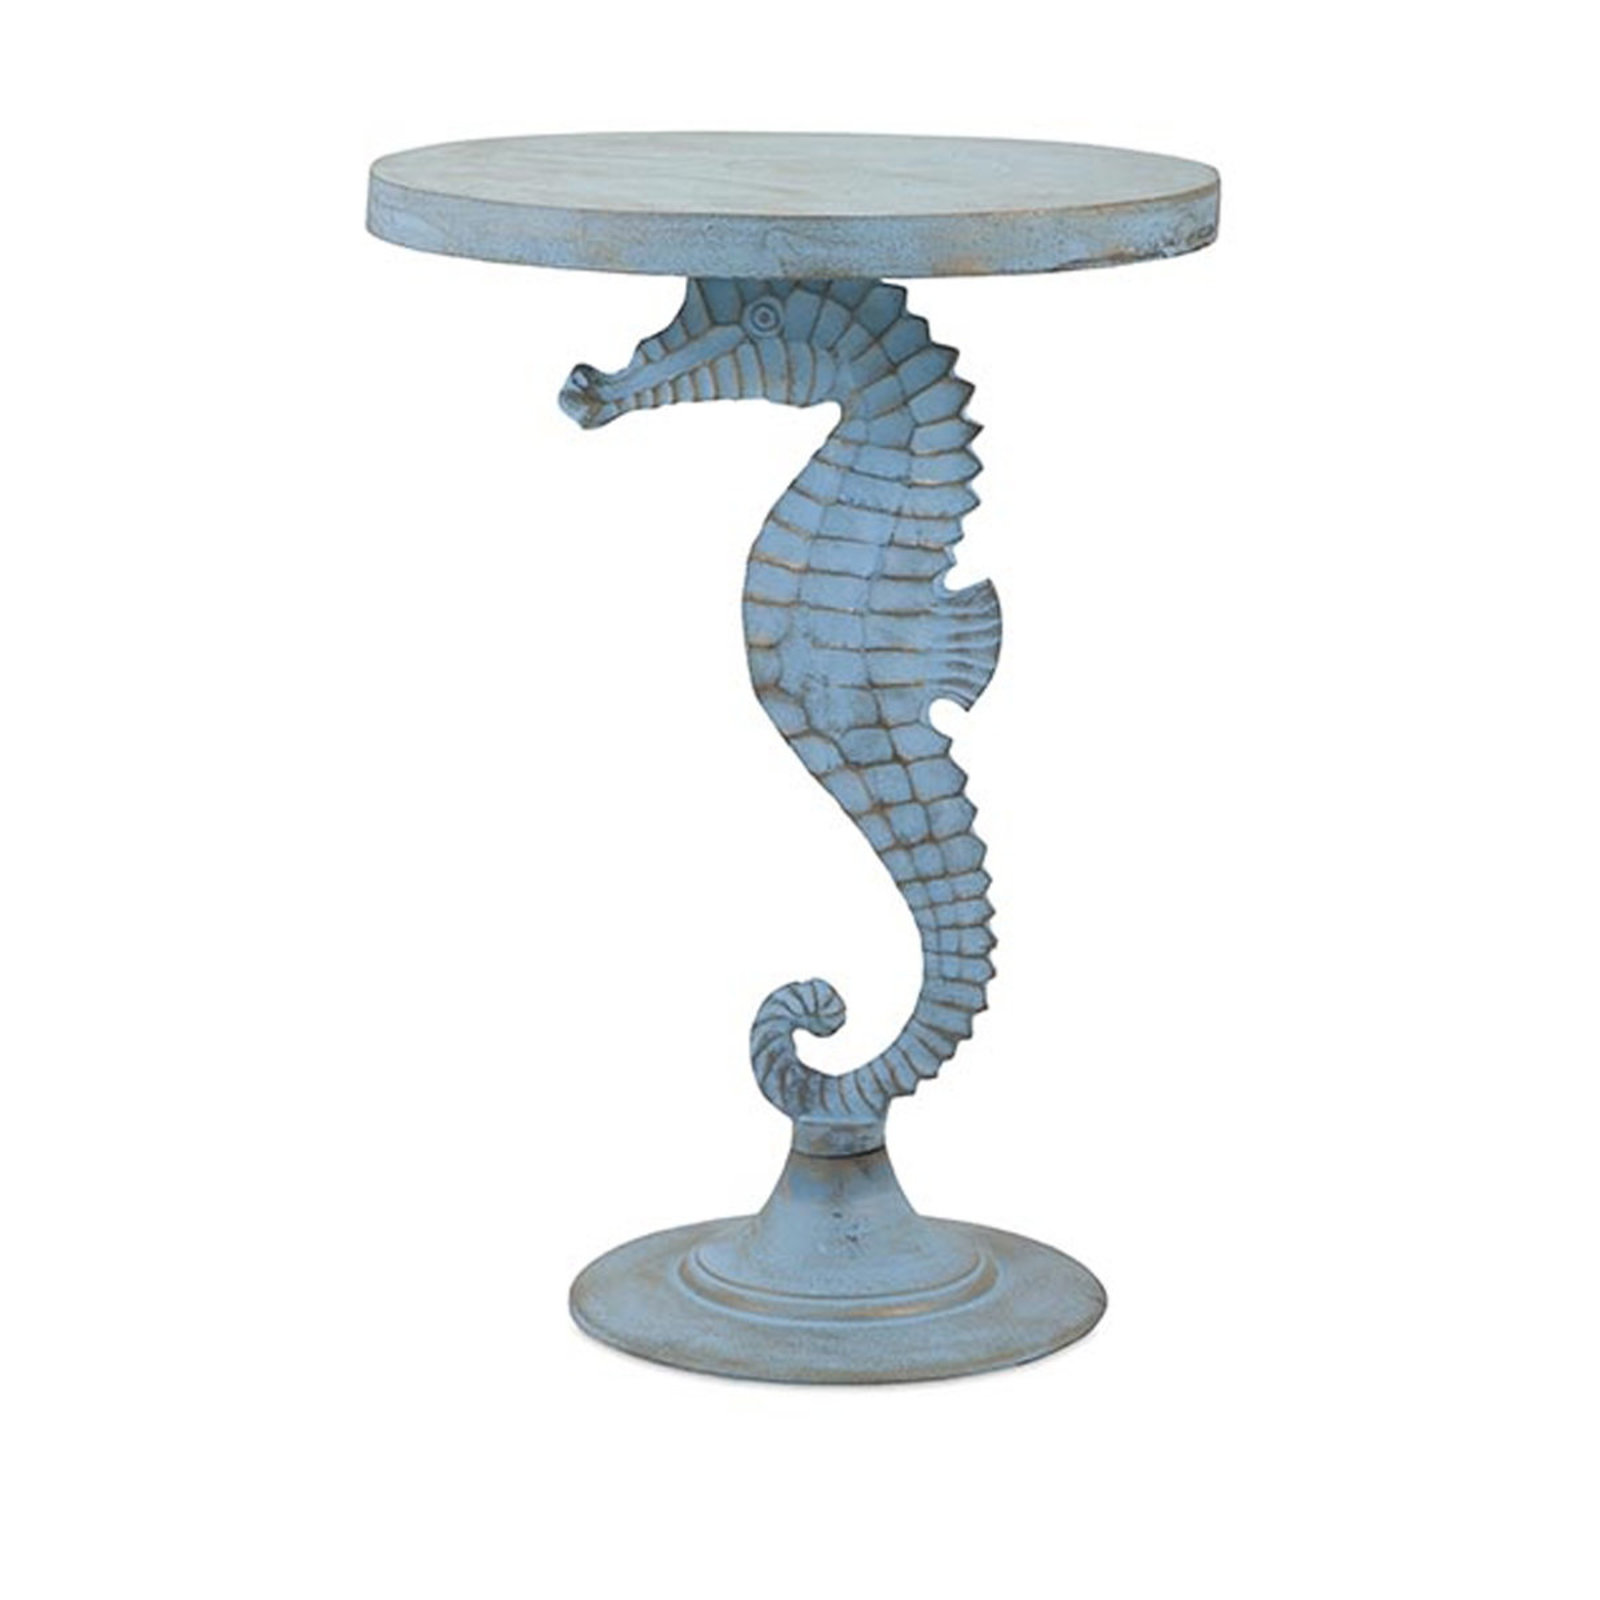 coffee tables side shades light weathered coastal seahorse accent table woven metal end with glass door pier coupons ashley furniture and all modern antique exterior doors